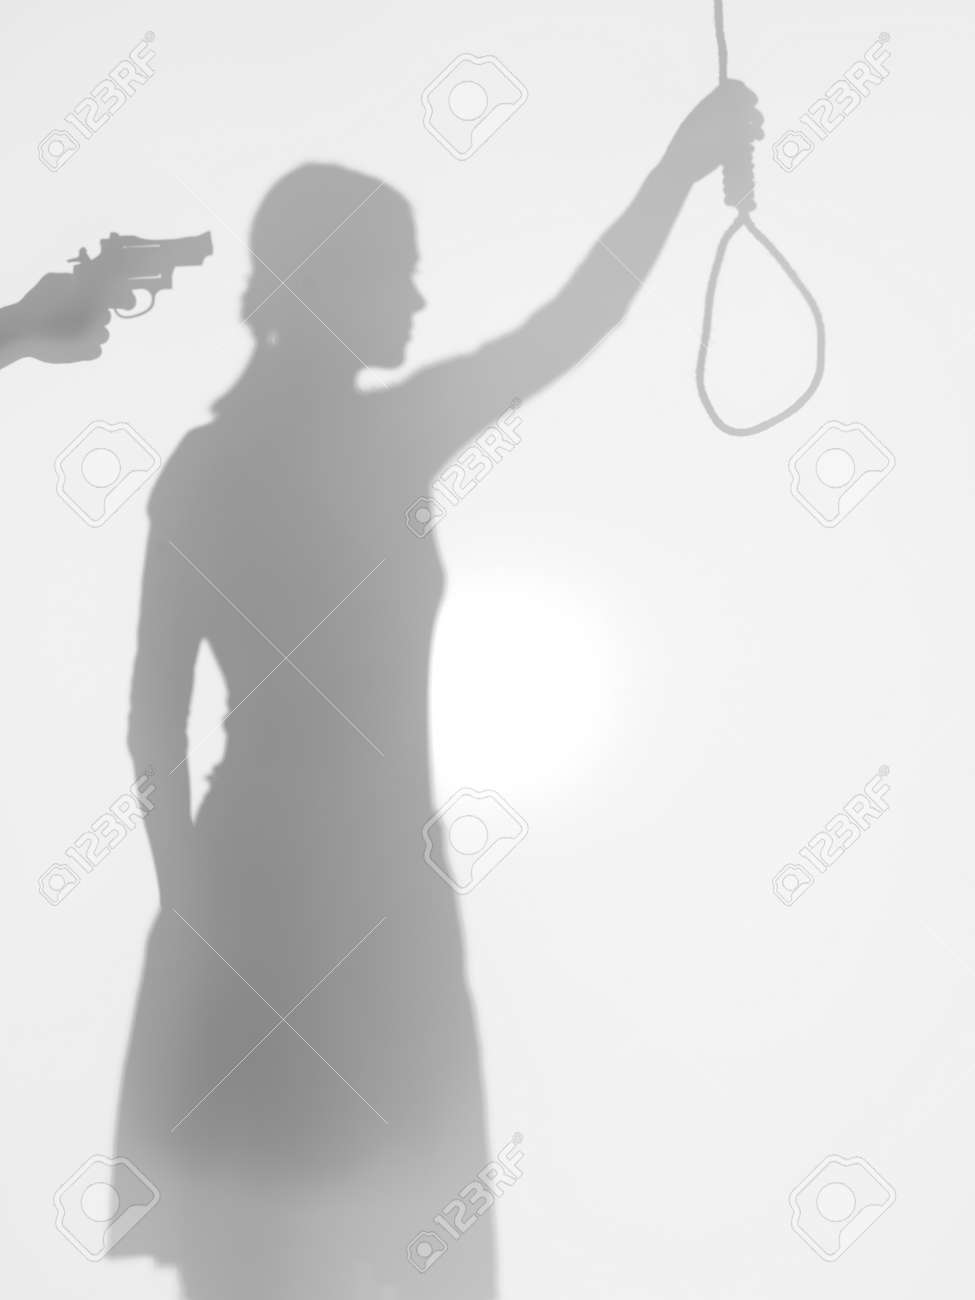 female body silhouette holding a strangling rope while beeing threatened with a gun, behind a diffuse surface Stock Photo - 17884496